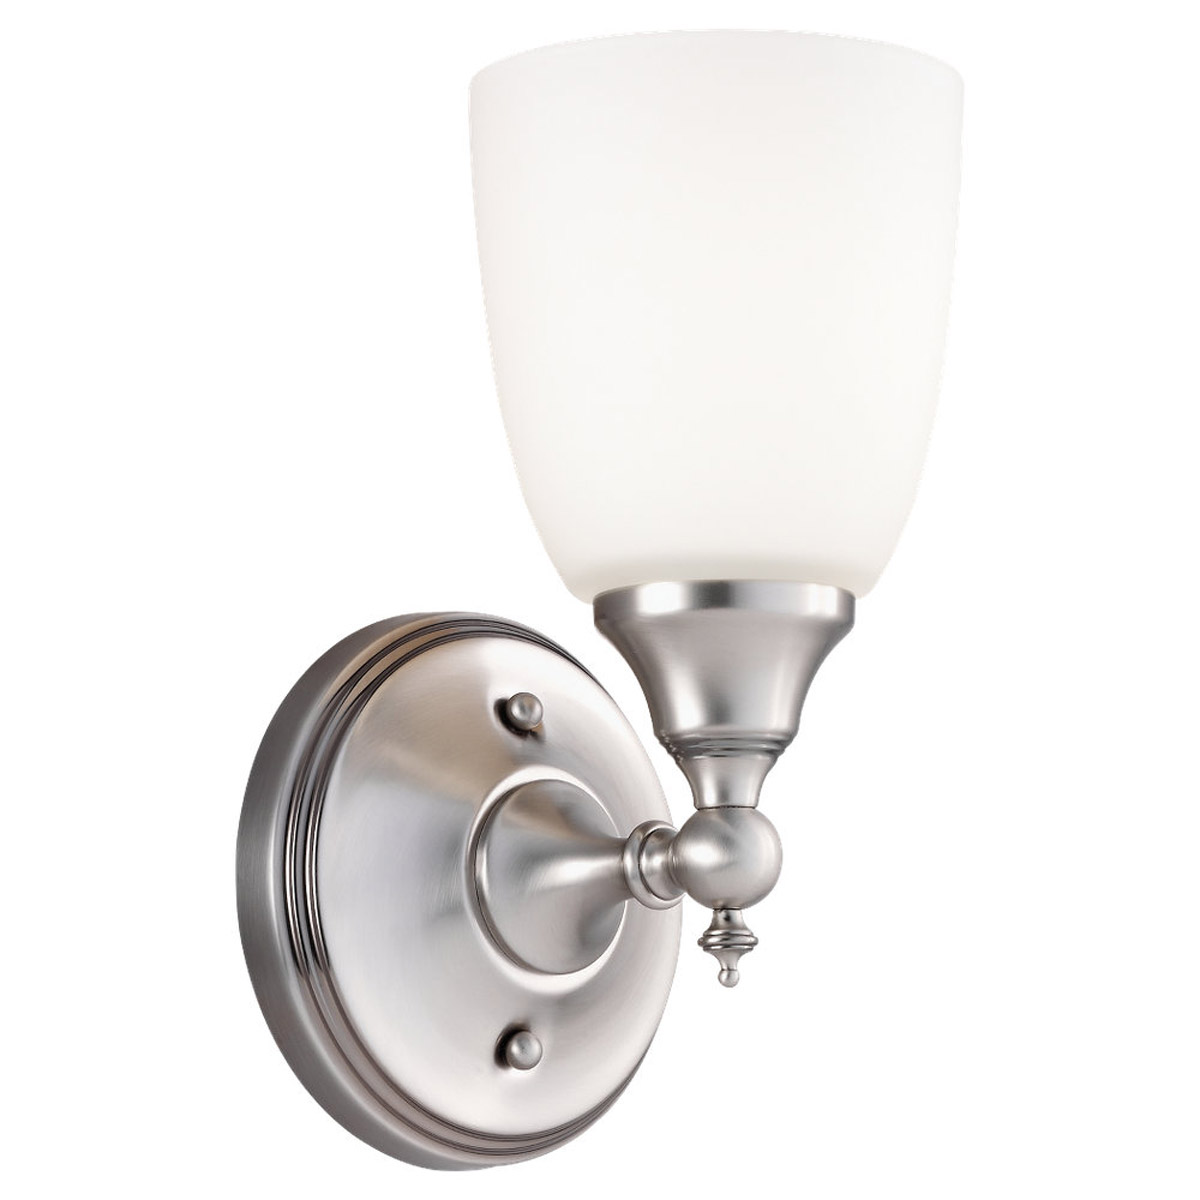 Sea Gull Lighting Finitude 1 Light Bath Vanity in Antique Brushed Nickel 44615-965